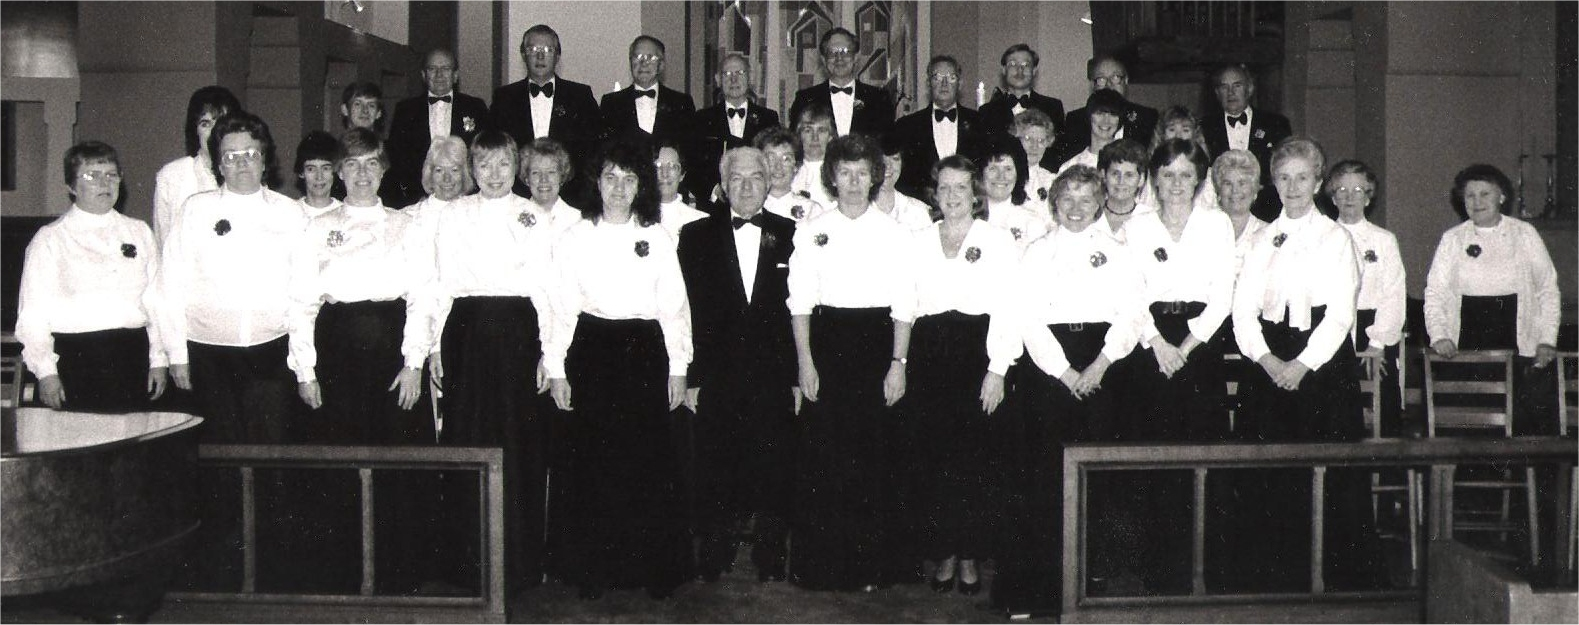 The choir at the Christmas concert 8th December 1990 in St. Augustine's Church Whitton